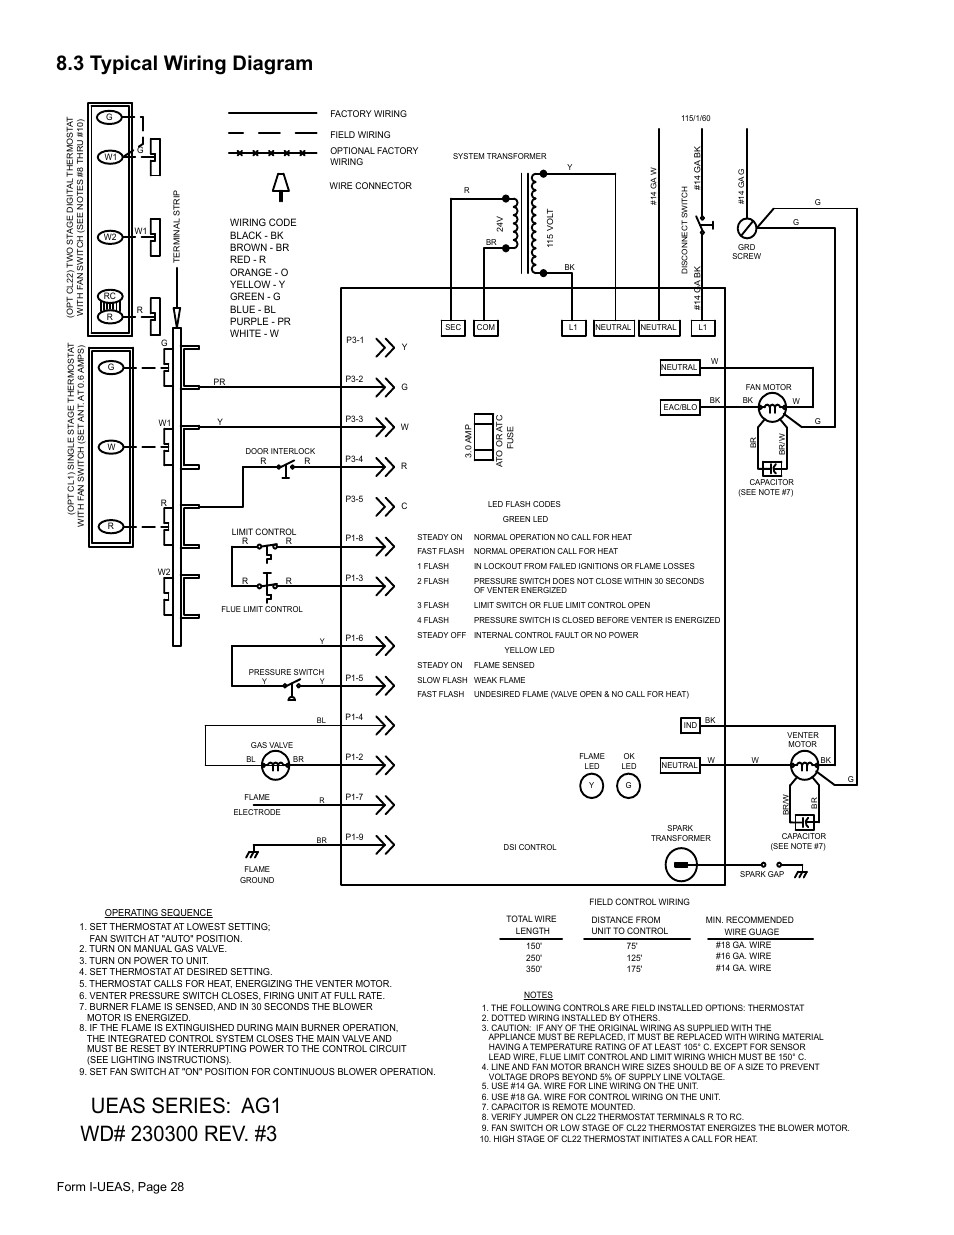 hight resolution of 3 typical wiring diagram form i ueas page 28 reznor old gas heater wiring schematic gas unit heater wiring diagrams